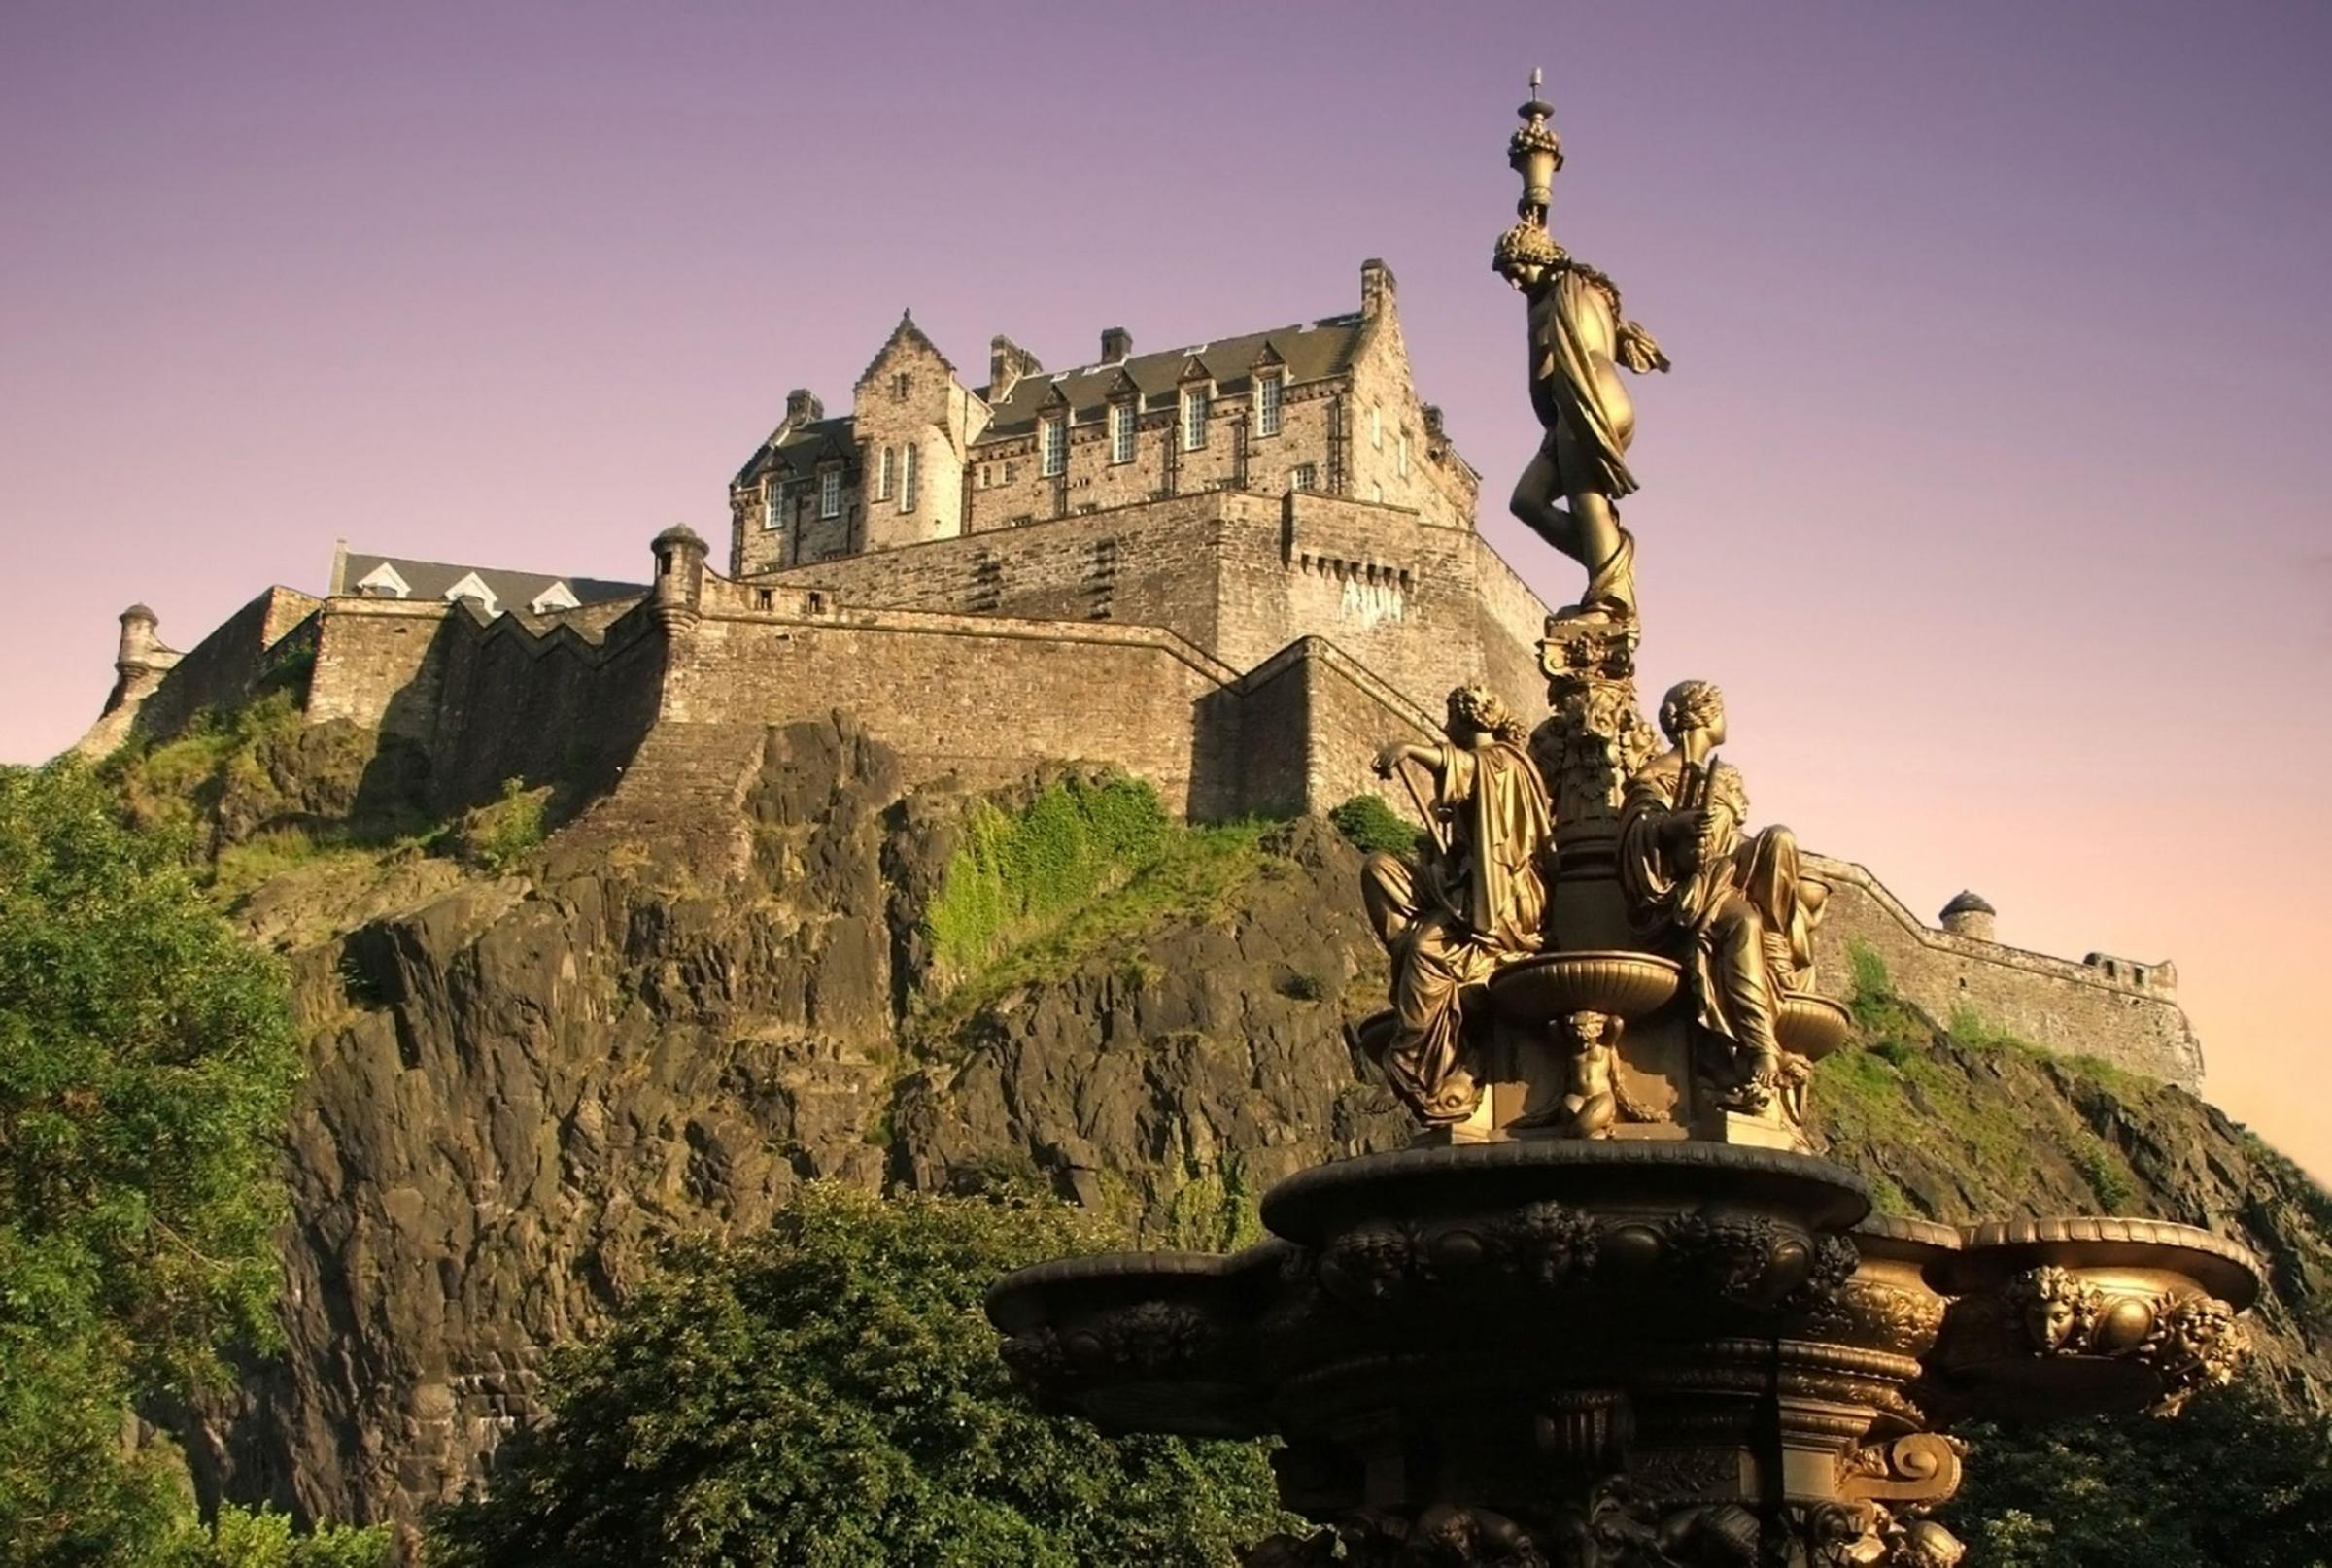 Scotland's attractions ranked among best in the world on Tripadvisor